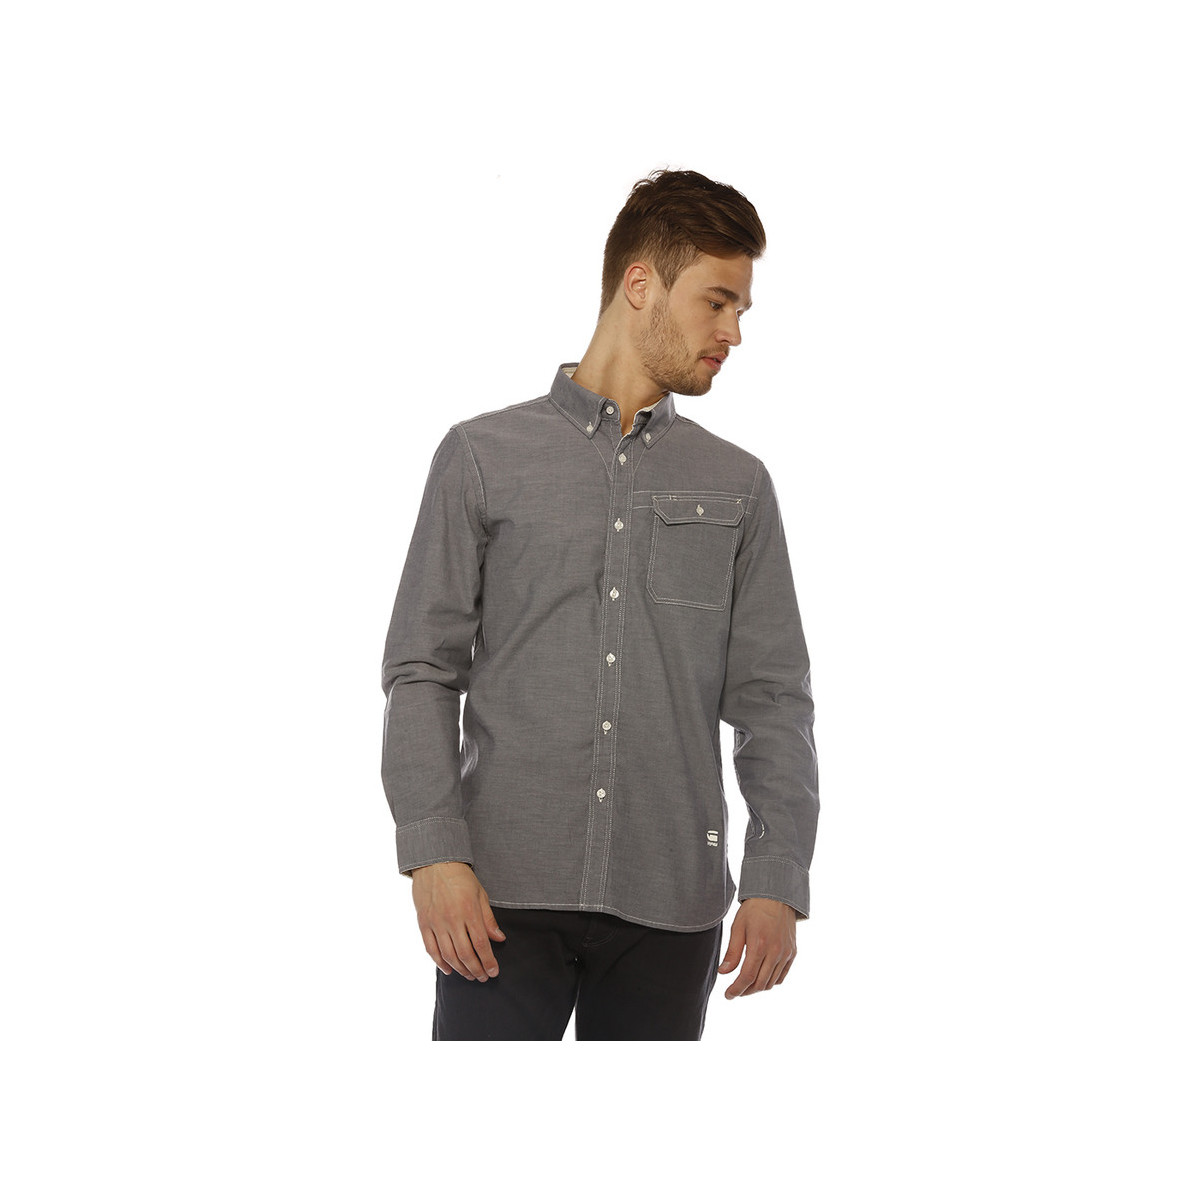 g star raw chemise homme oxford btd shirt l s mazzarine blue bleu v tements chemises. Black Bedroom Furniture Sets. Home Design Ideas